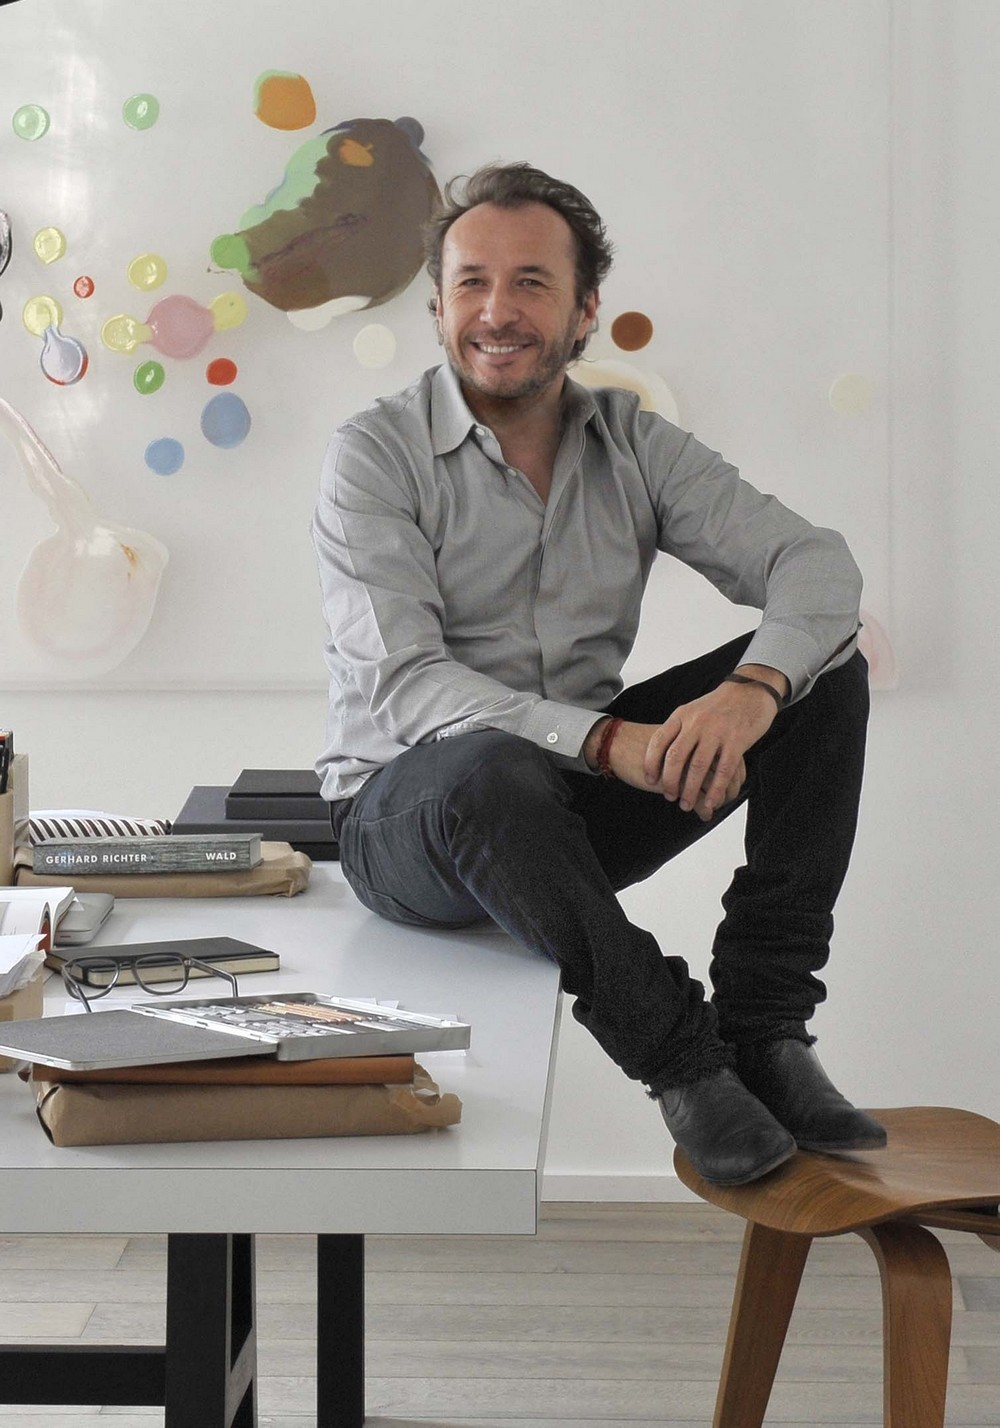 Top 20 French Interior Designers That Every Design Lover Must Know! french interior designers Top 20 French Interior Designers That Every Design Lover Must Know! Top 20 French Interior Designers That Every Design Lover Must Know 5